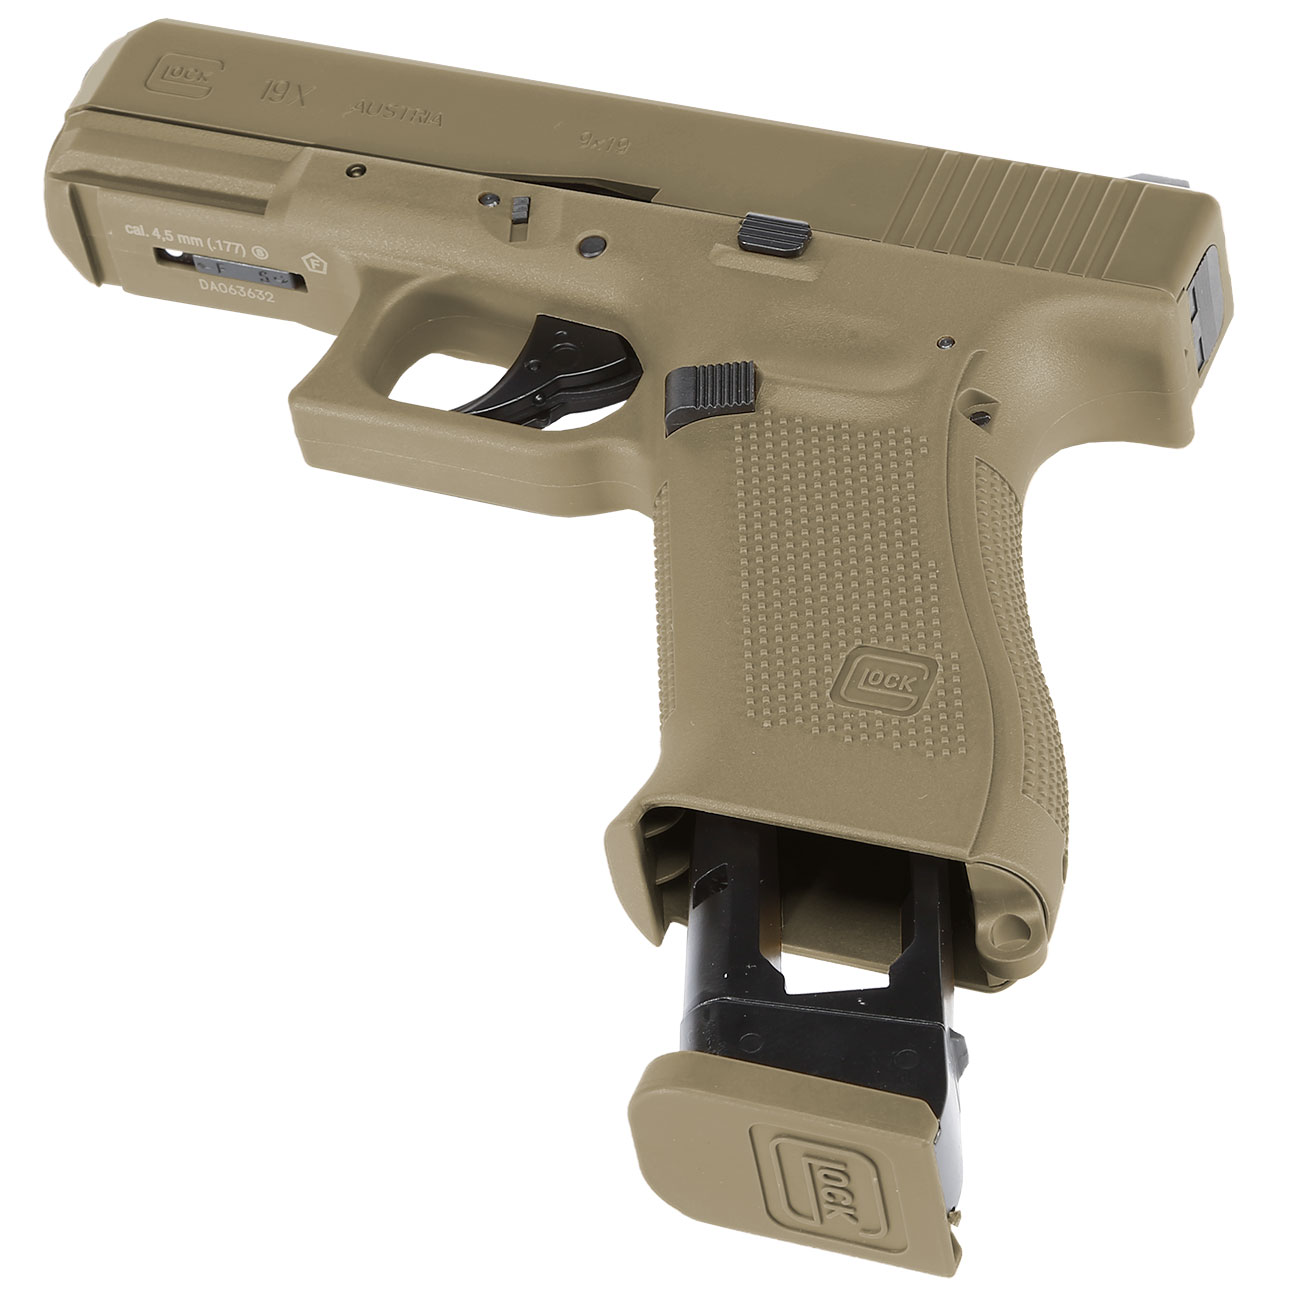 Glock 19X CO2-Luftpistole Kal. 4,5mm Stahl-BB coyote tan Blowback 6